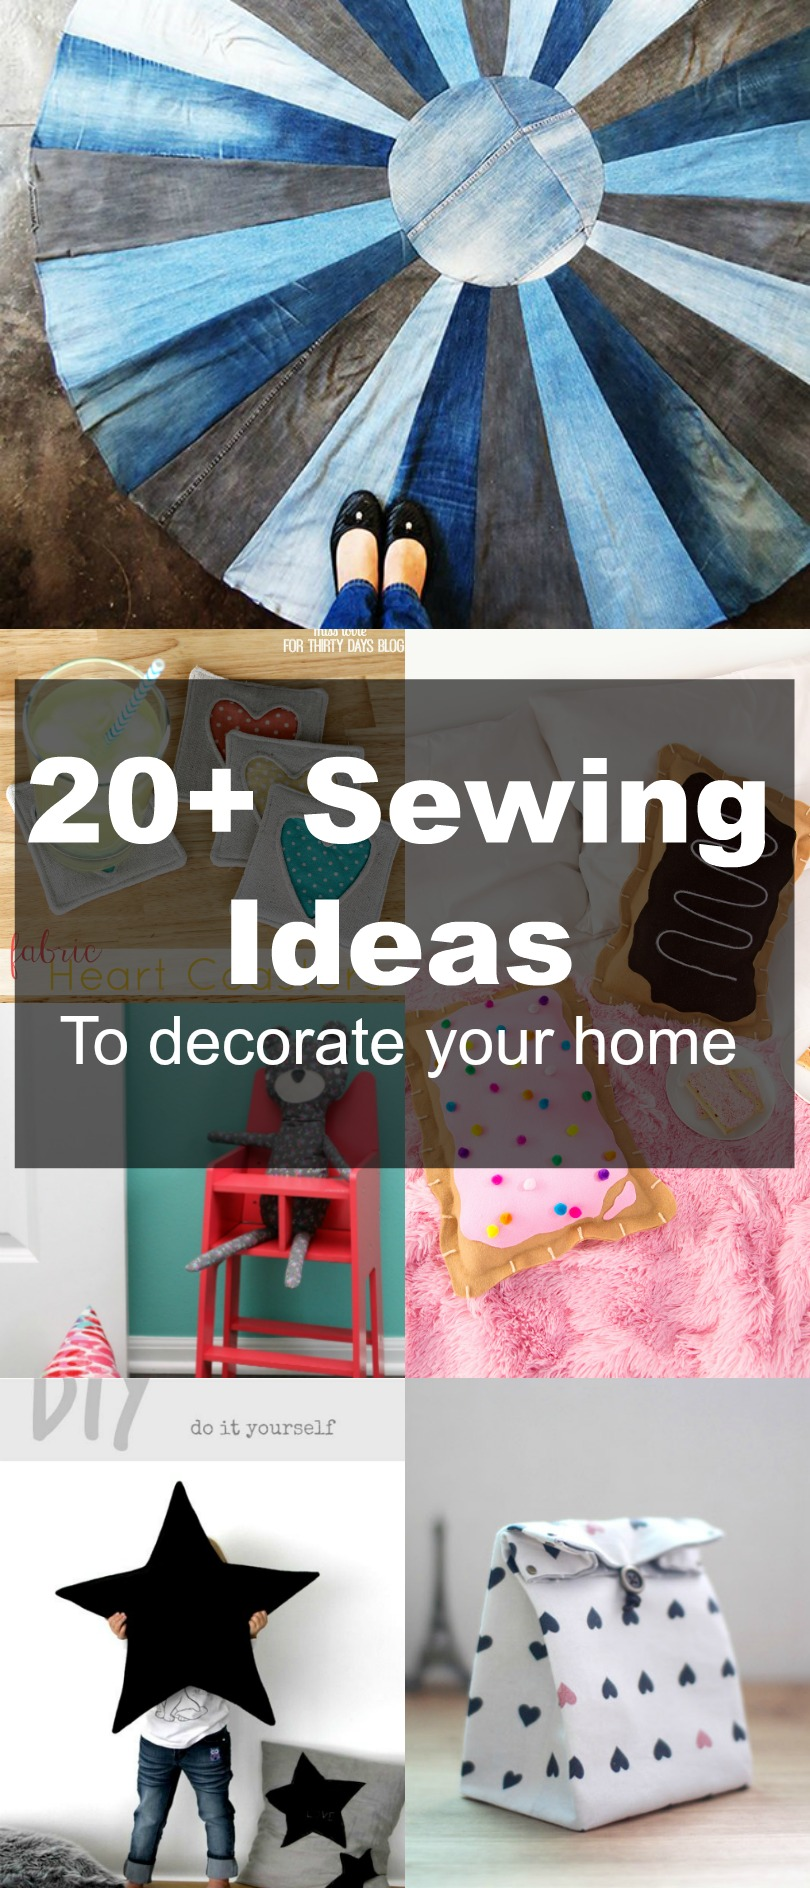 Charming Home Decor Sewing Ideas Part - 12: FREE SEWING PATTERNS: 20+ Home Decor Ideas To Sew